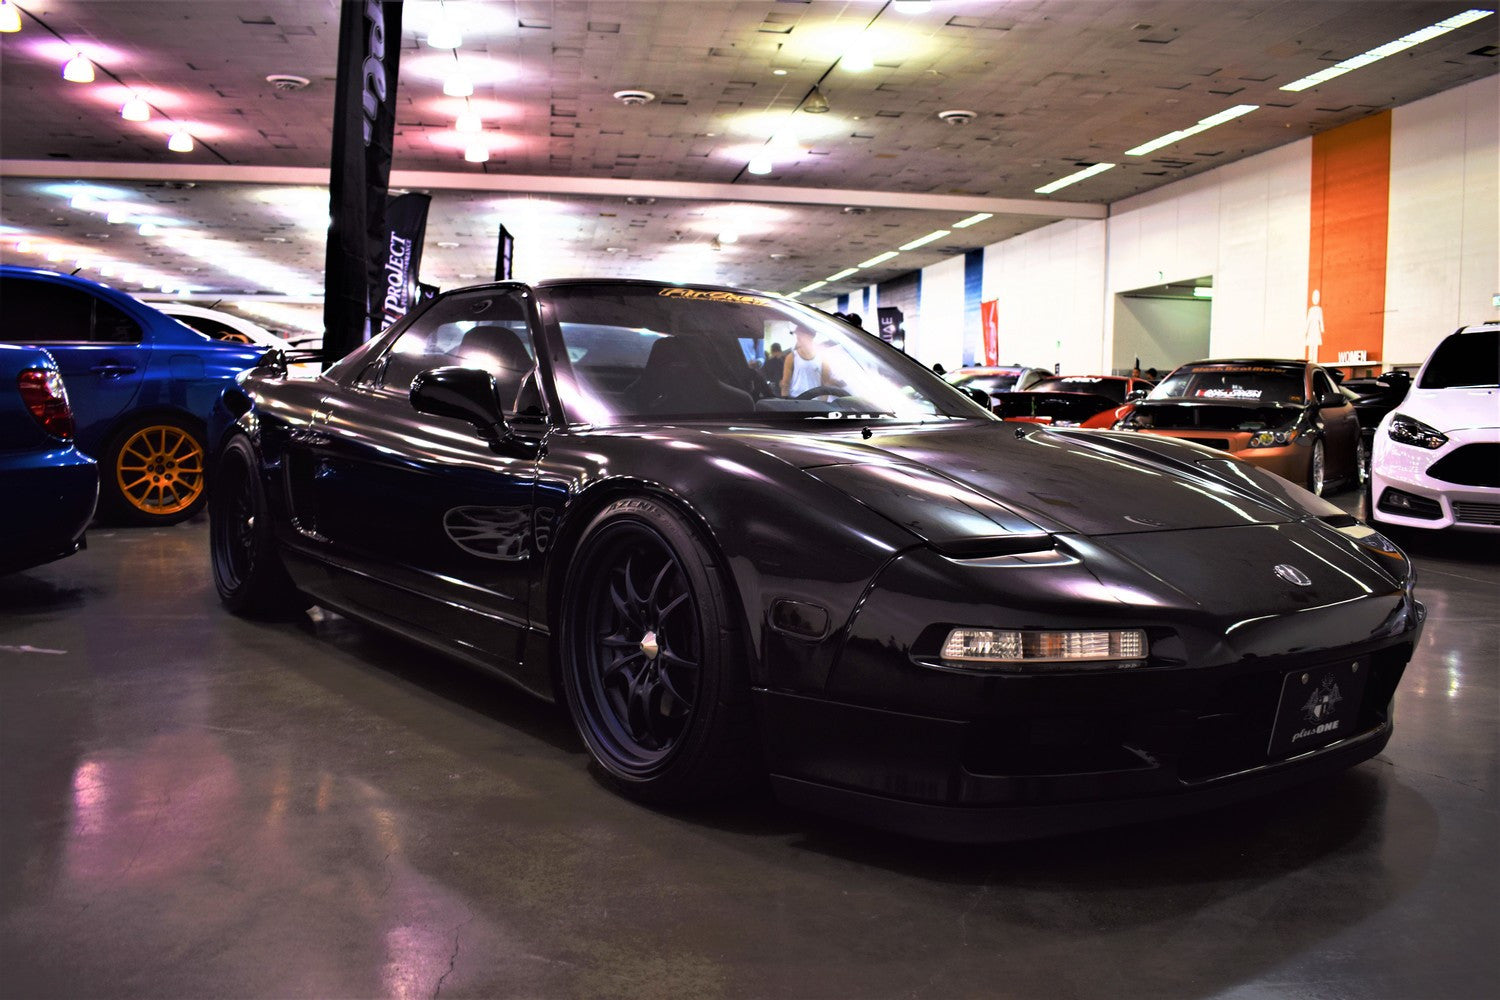 clean black honda nsx